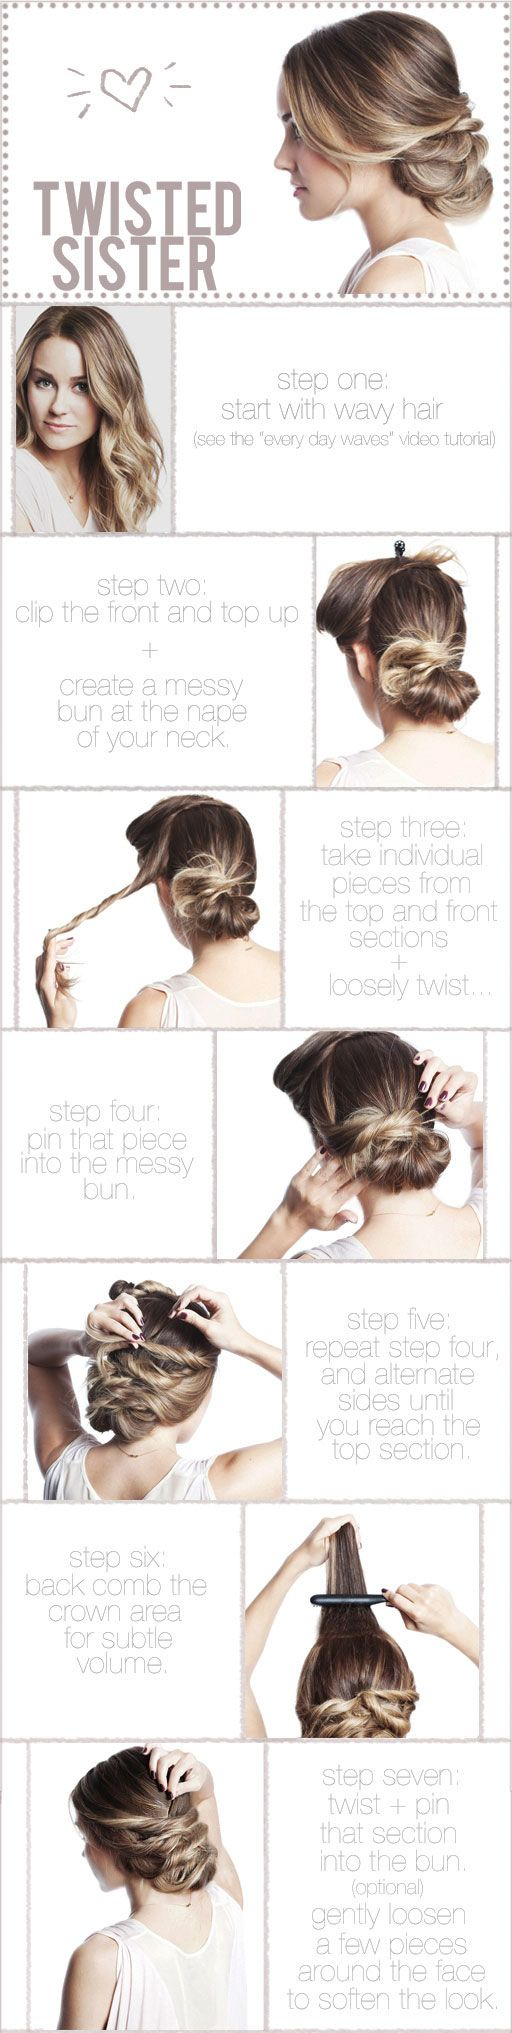 Twister sister.: Hair Ideas, Hair Tutorials, Long Hair, Messy Buns, Hairstyle, Twists Sisters, Hair Style, Lauren Conrad, Updo